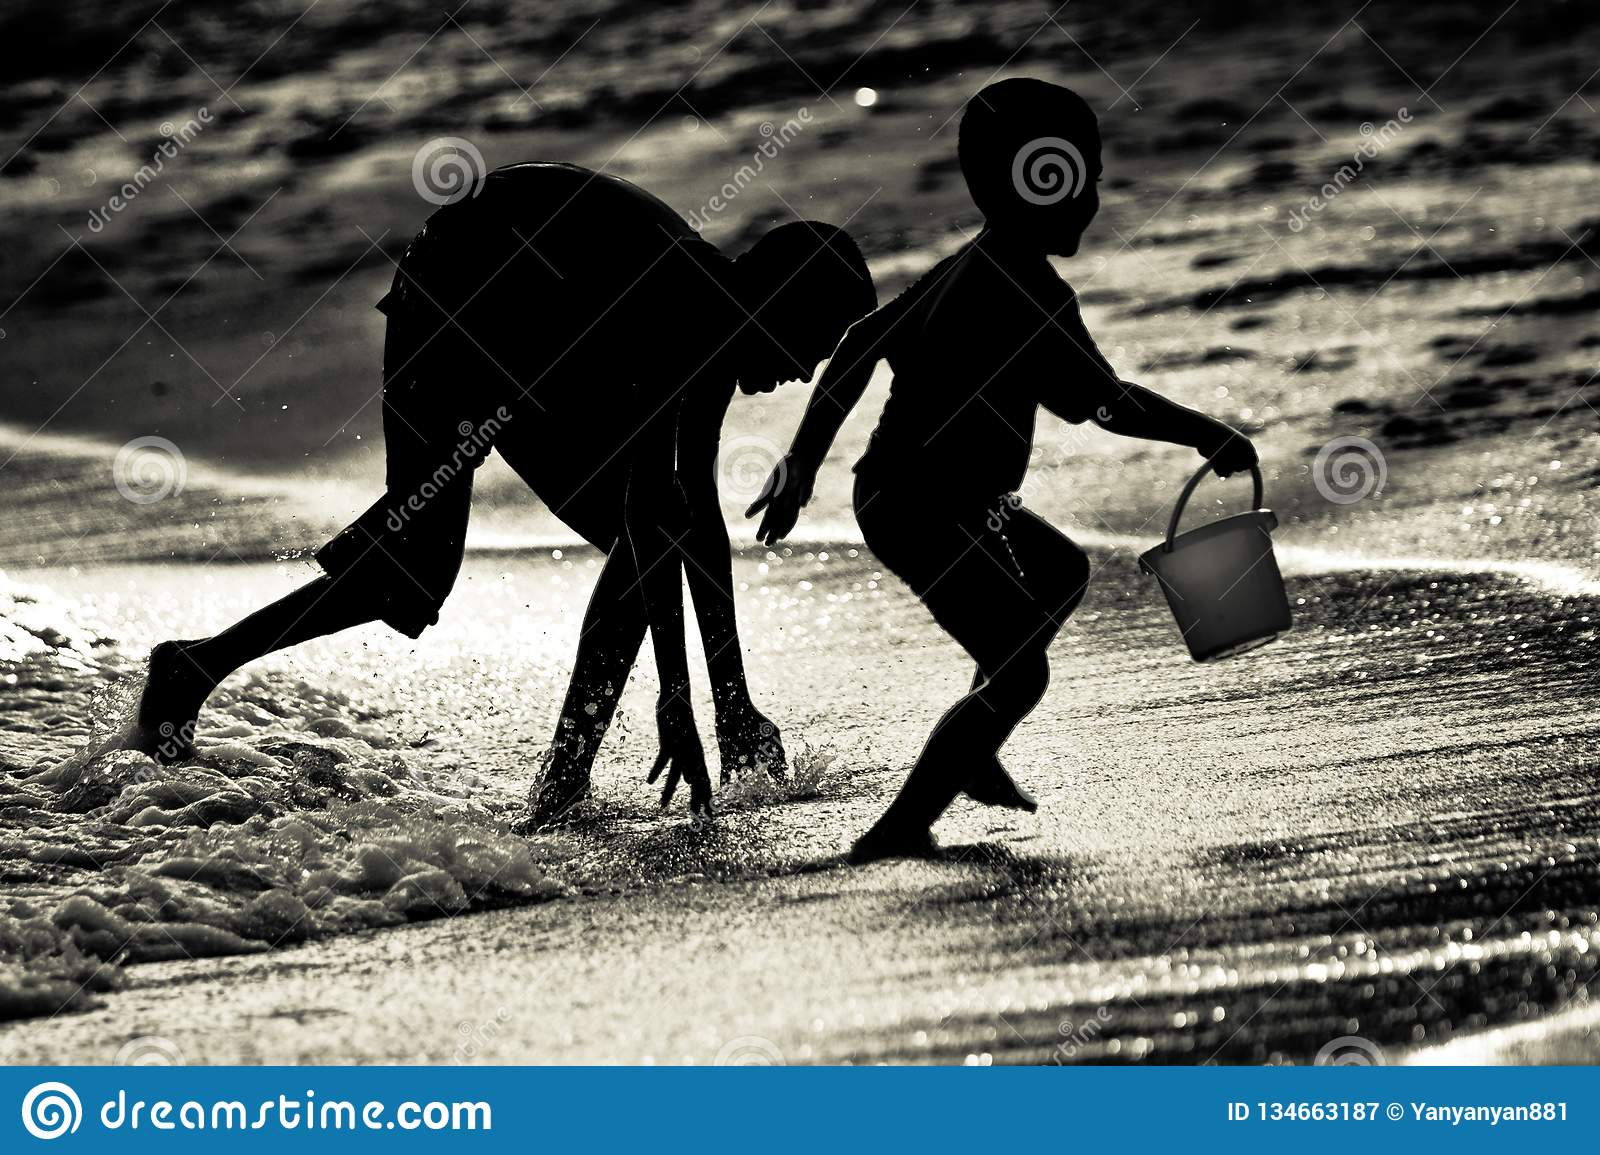 Siblings brothers playing catching at a beach in Singapore